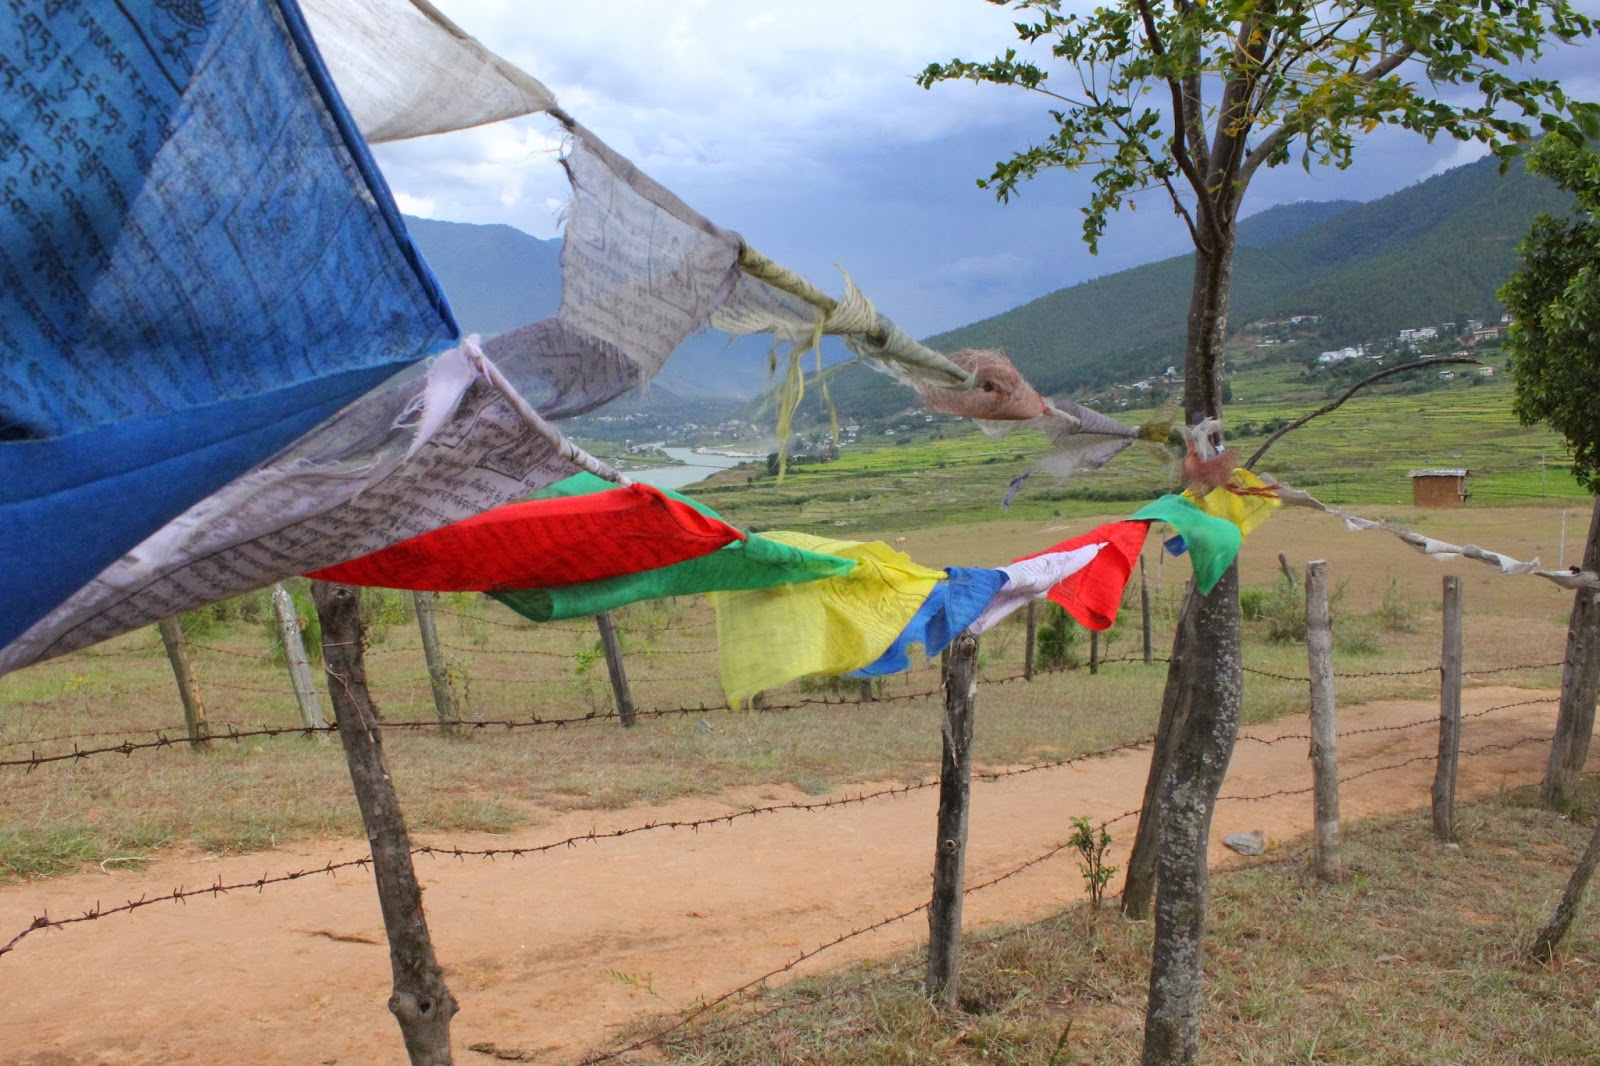 Bhutan: Entry Routes For Indian Citizens